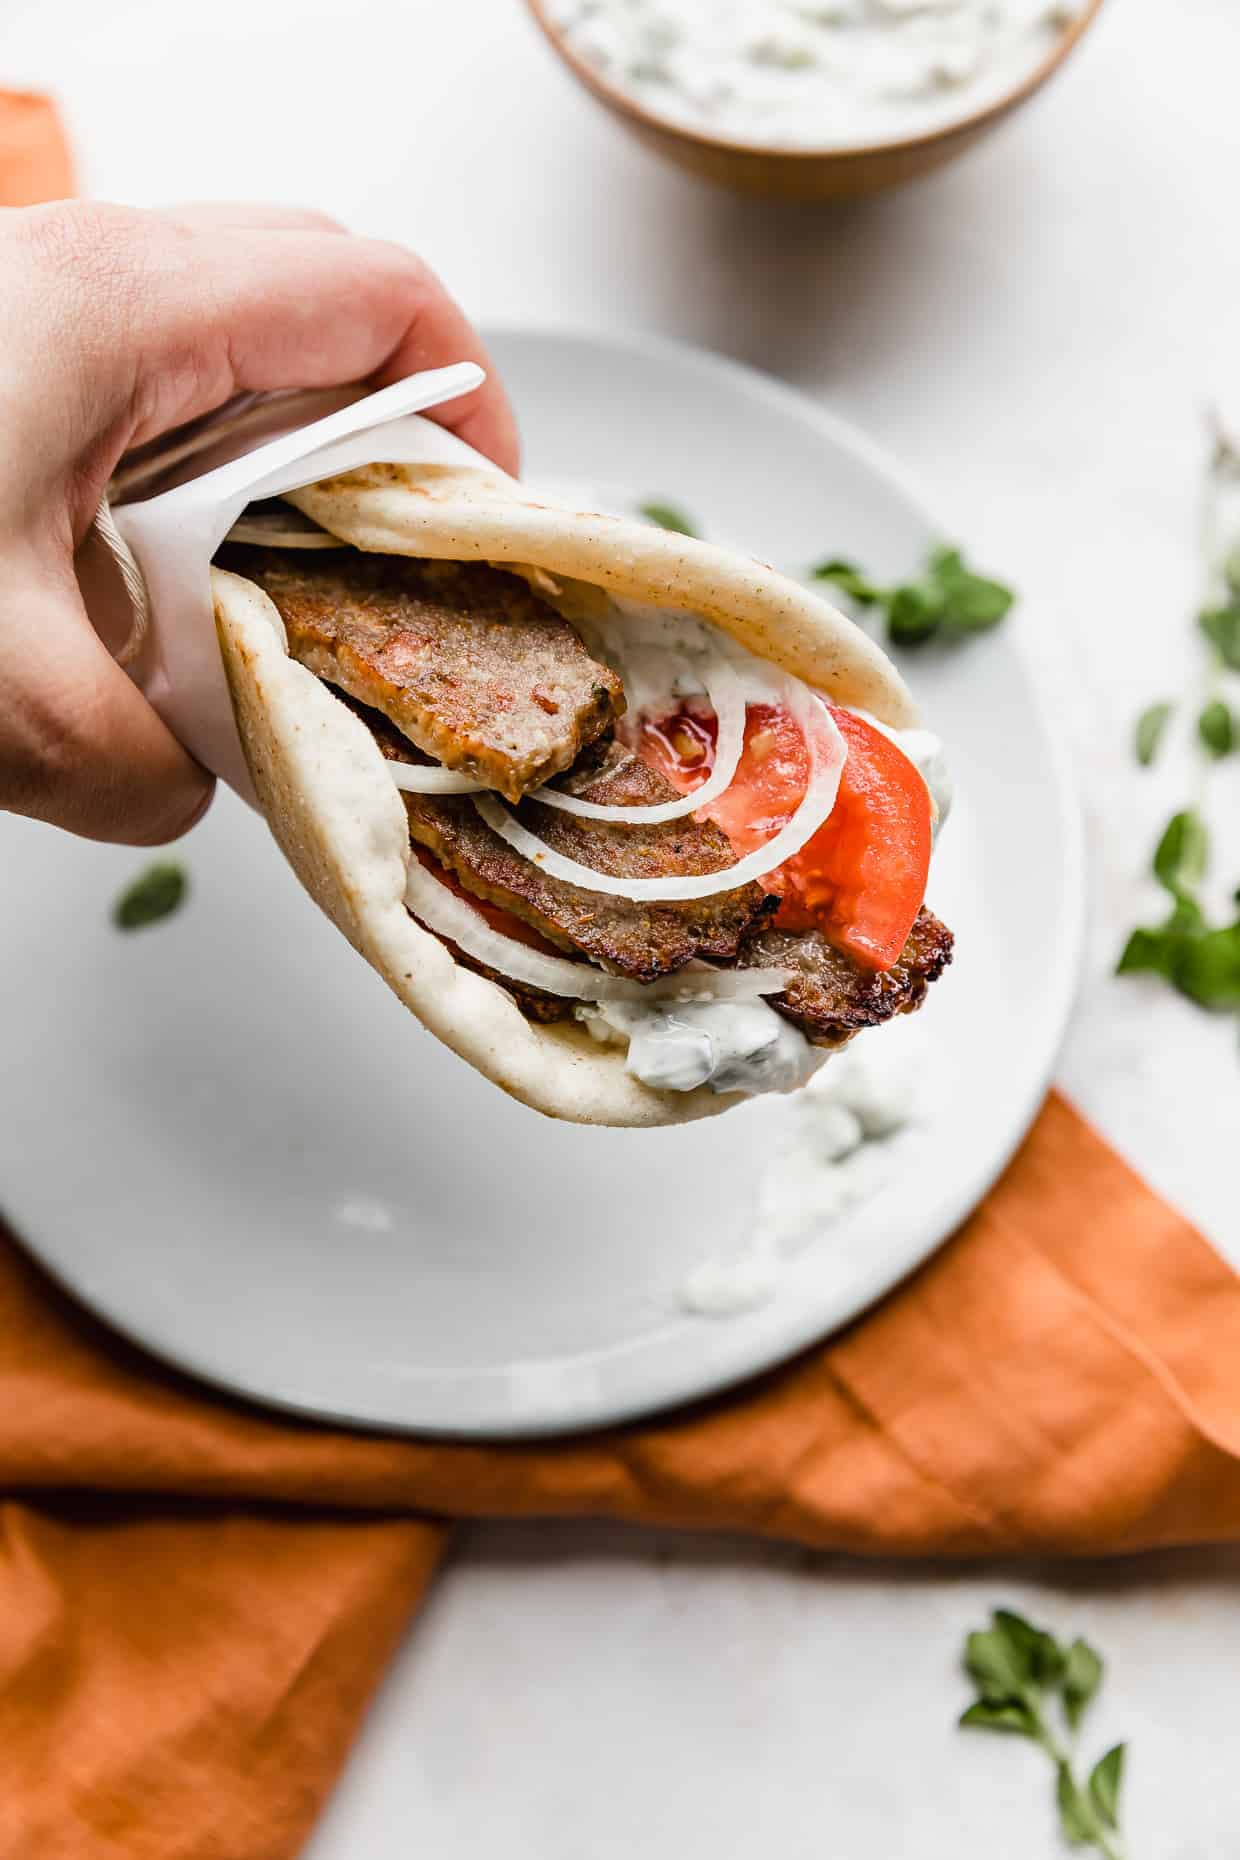 A hand holding up a greek lamb gyro in a flat bread.